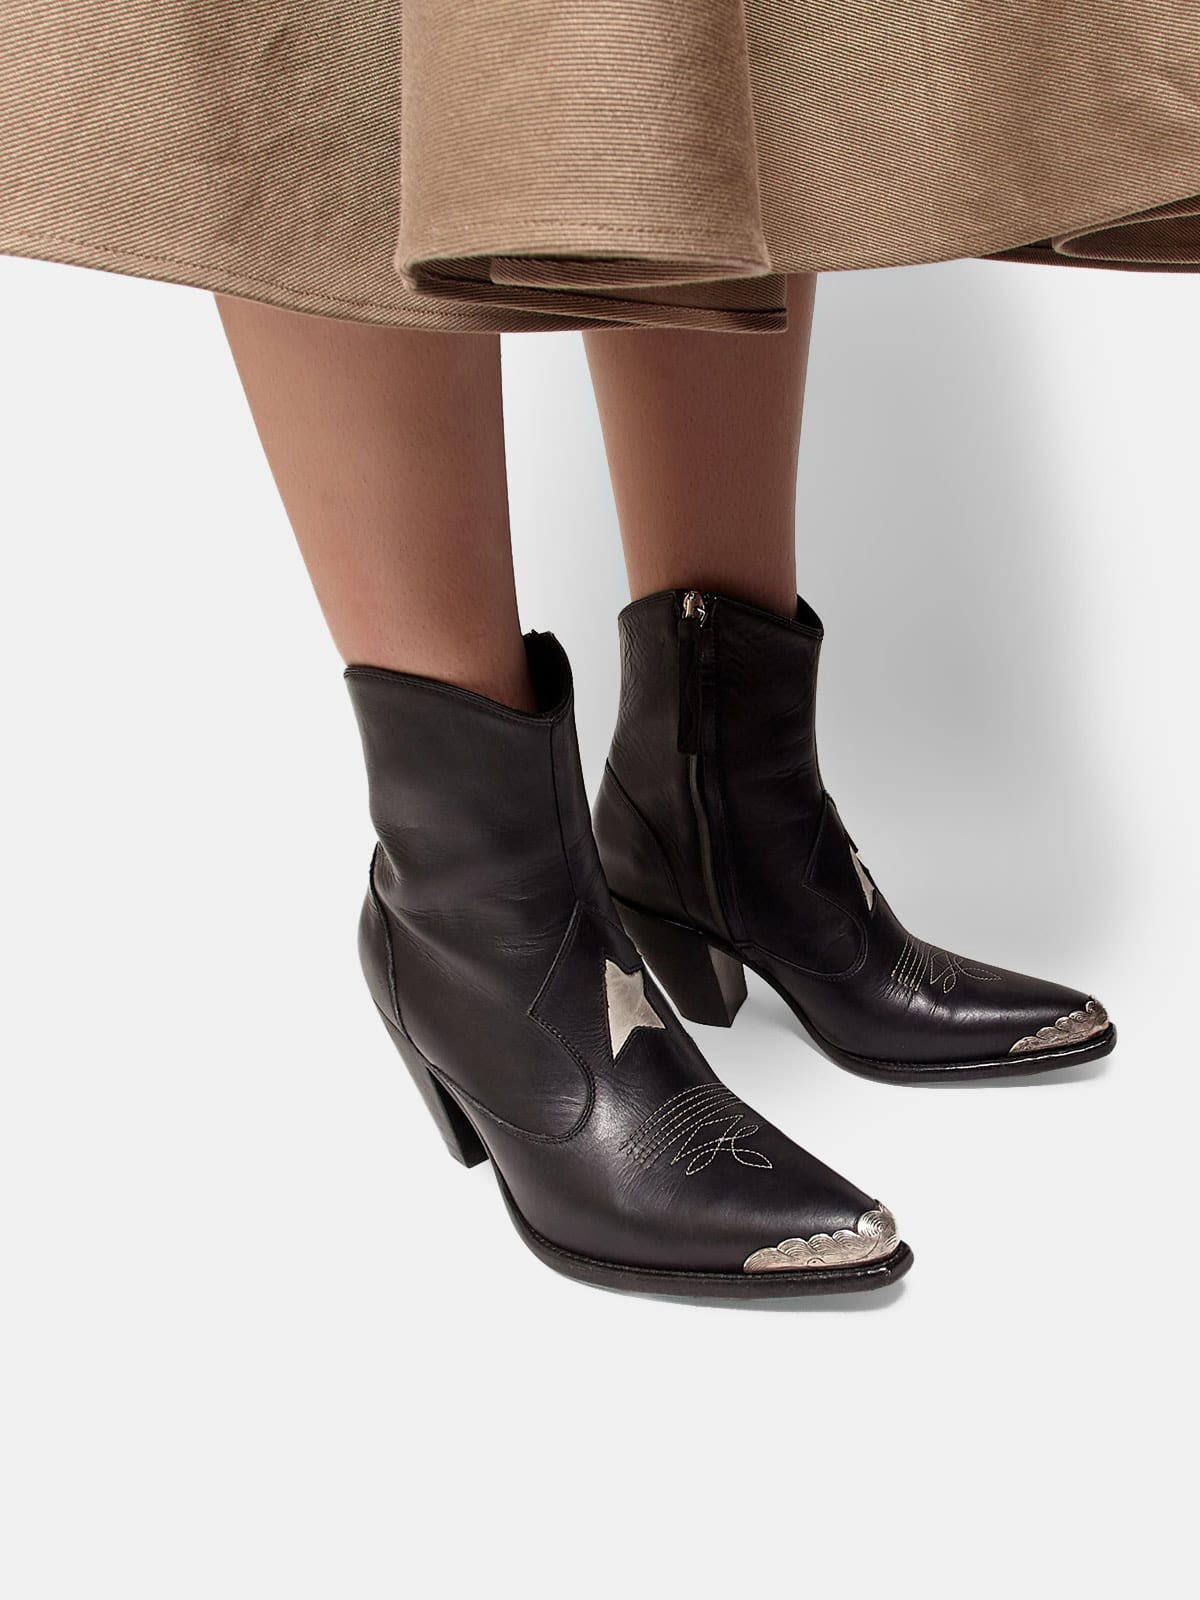 Nora ankle boots with a gold star and metal plate